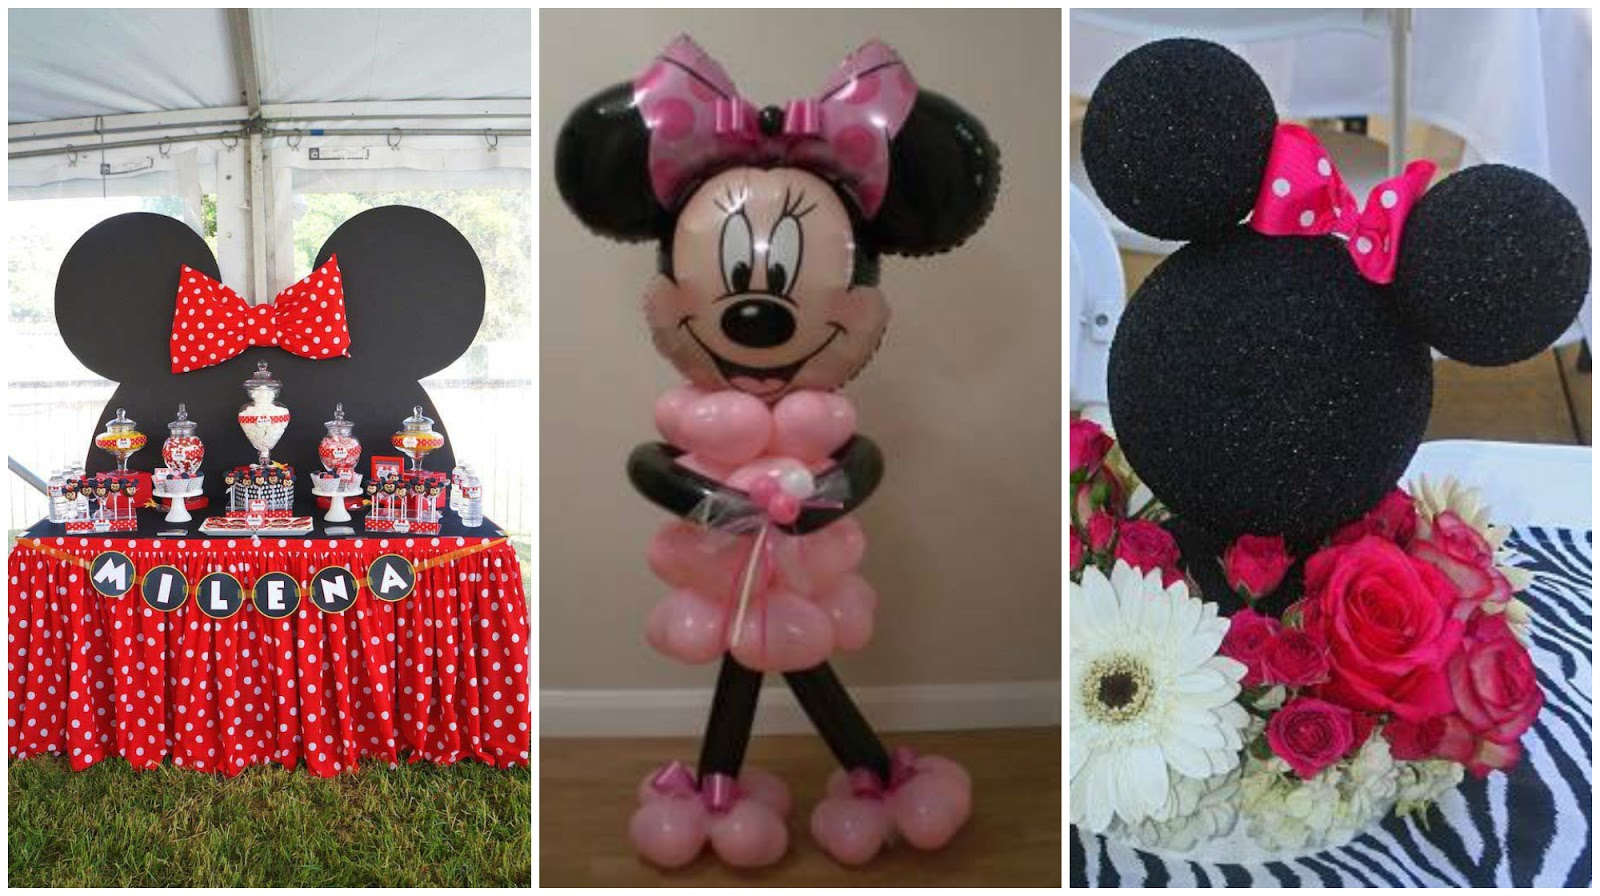 Cómo decorar una fiesta inspirada en Minnie Mouse